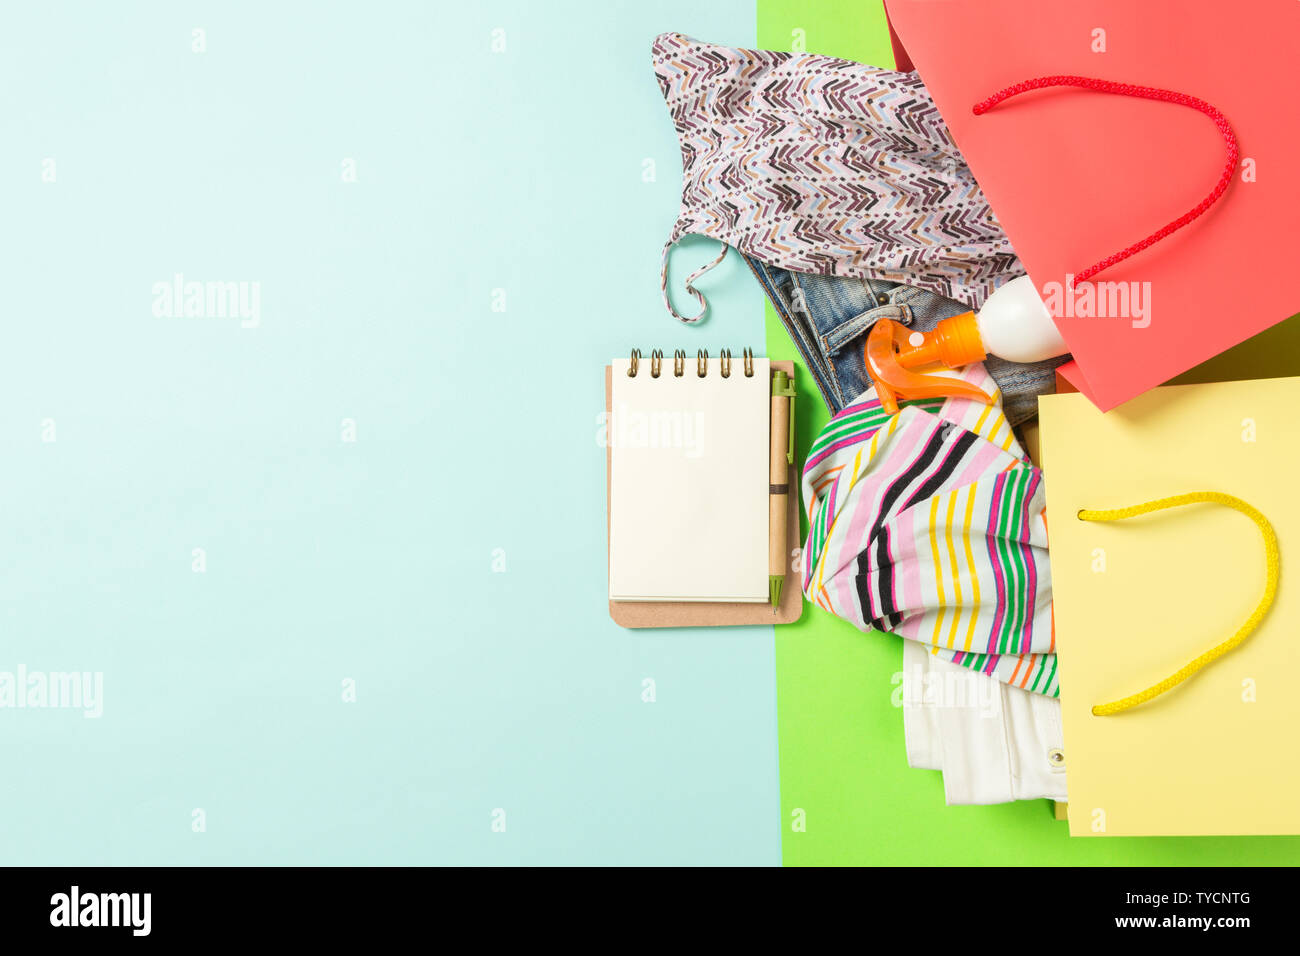 Summer concept of colourful shopping bags full of clothes. Gift bags with T-shirt, denim shorts, notebook and bottle of sunscreen. Summer wishlist con - Stock Image